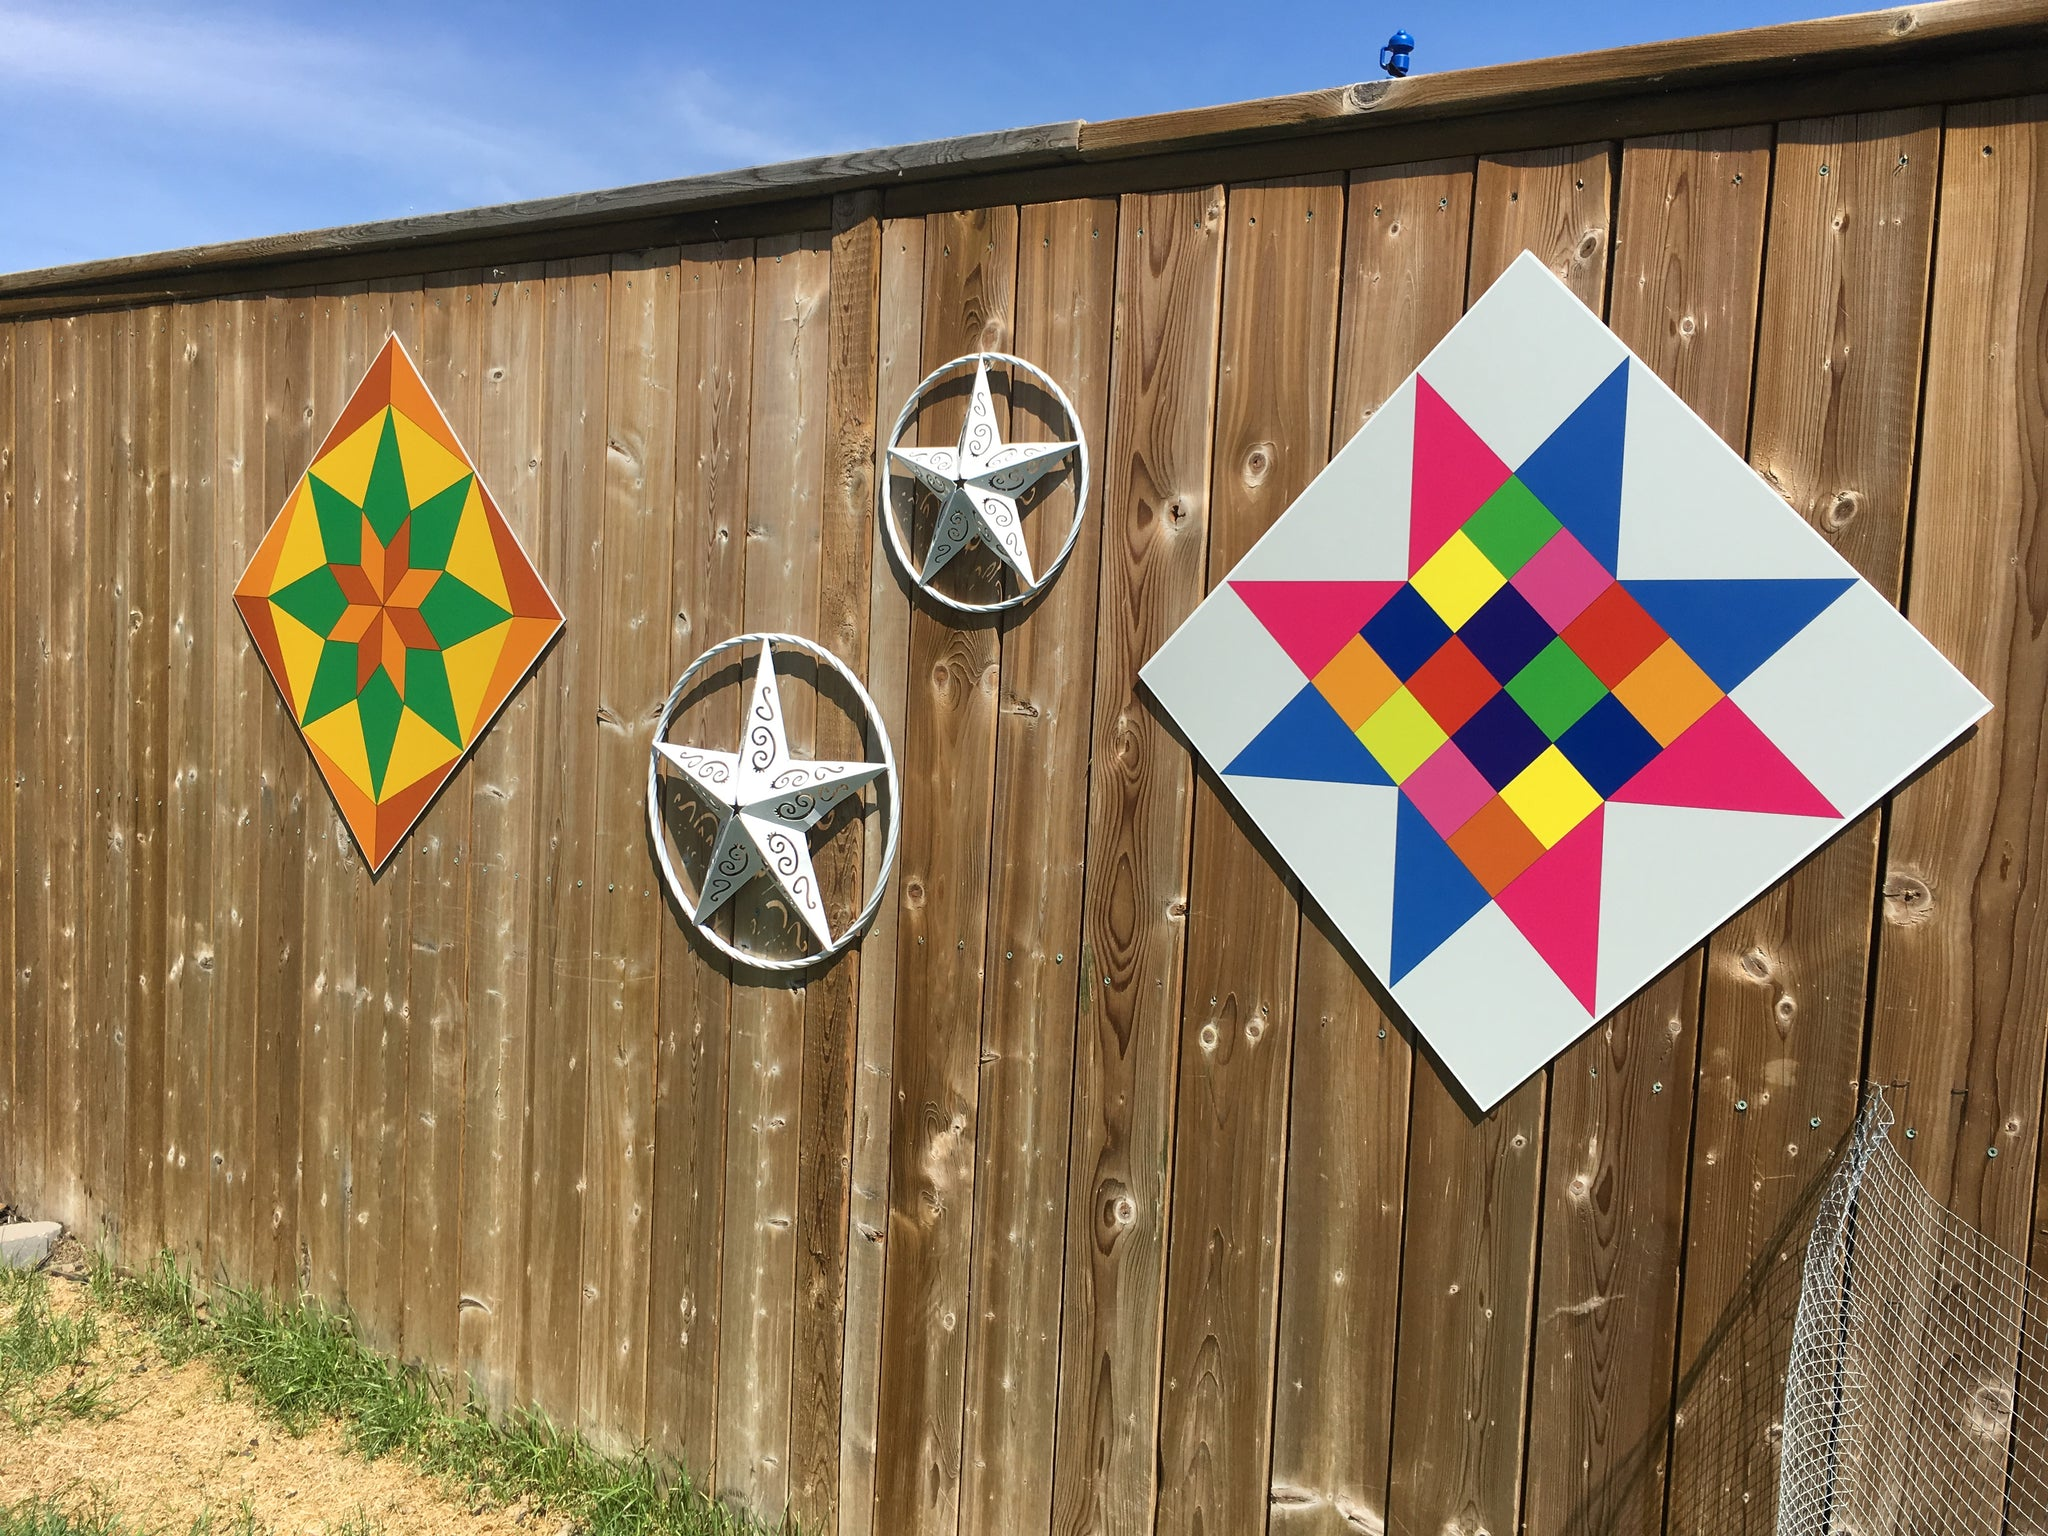 Playtime -  Backyard Barn Quilt - Quilt Designs in the Yard